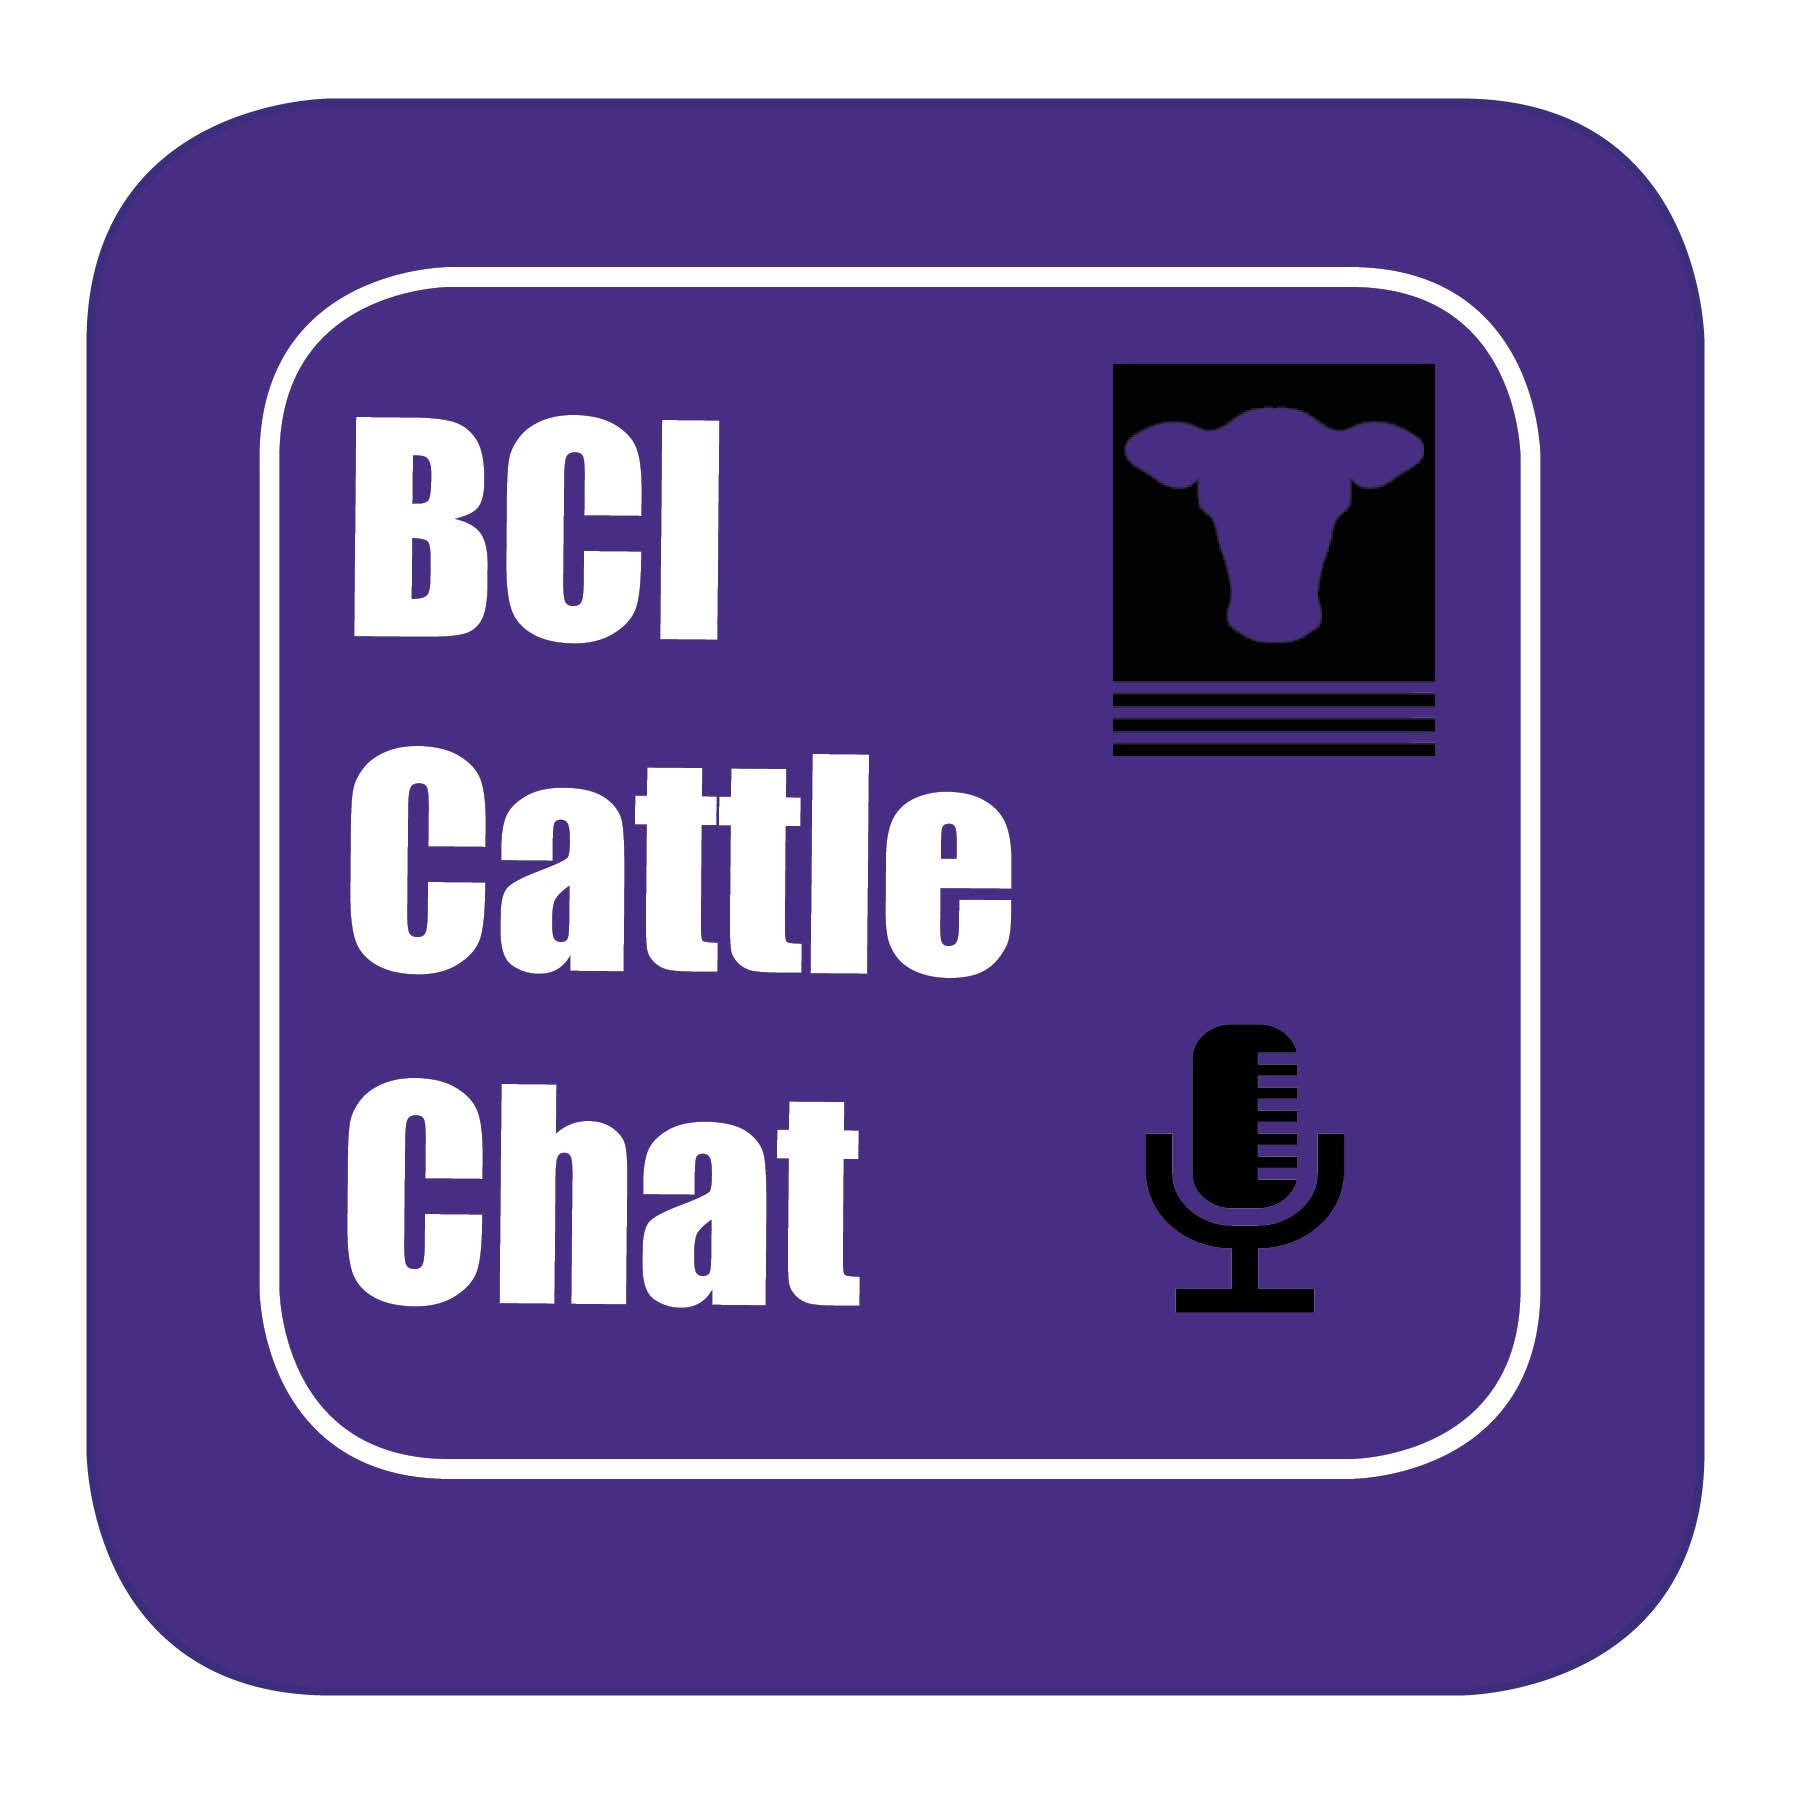 BCI Cattle Chat - Episode 23